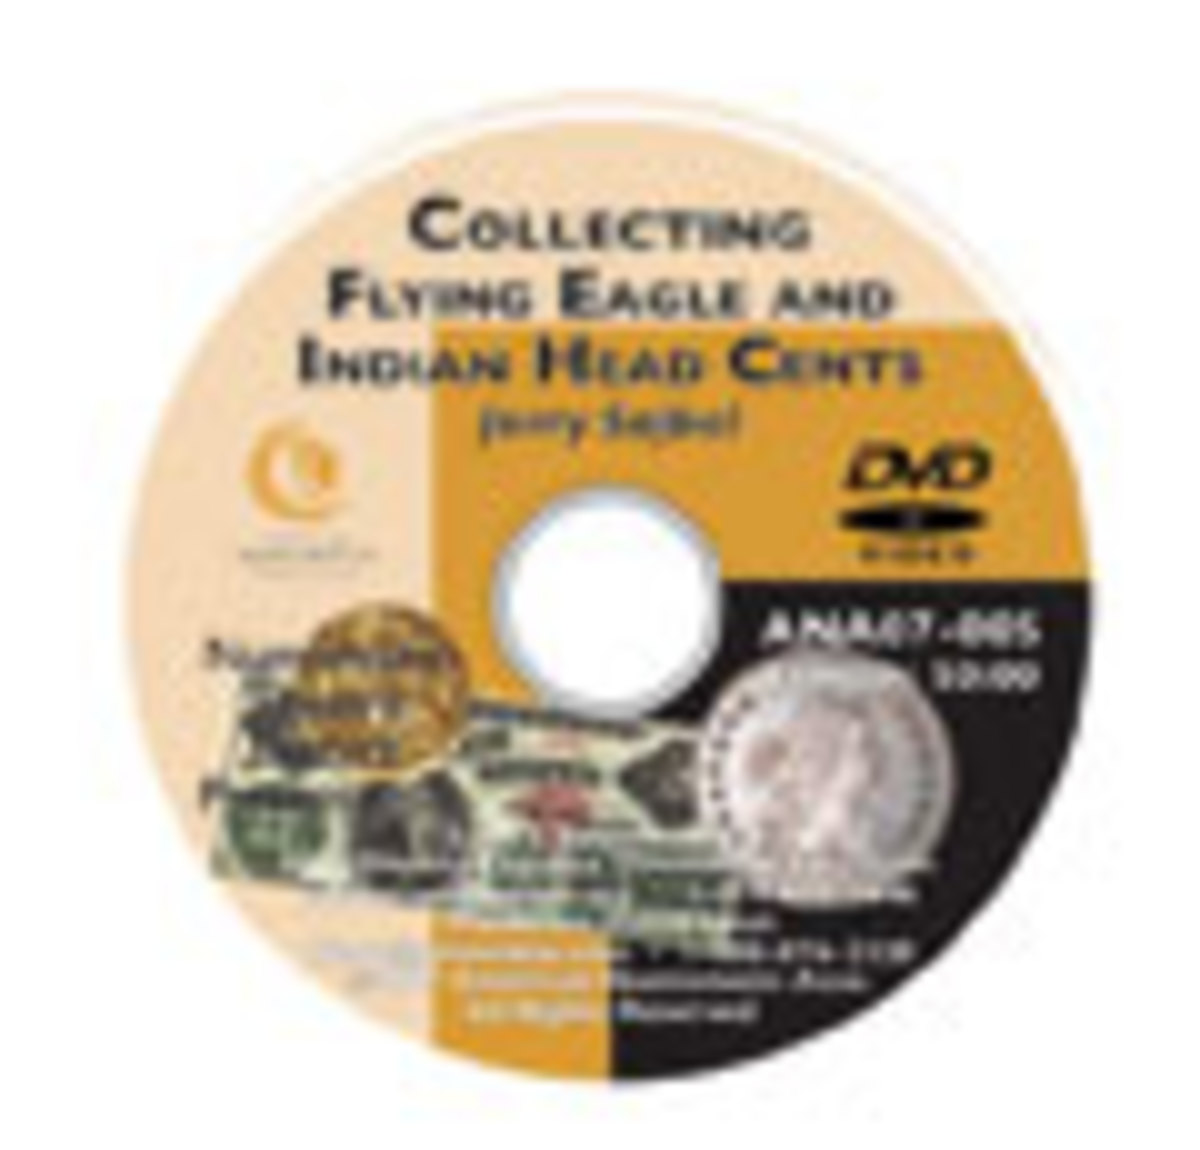 Collecting Flying Eagle and Indian Head Cents